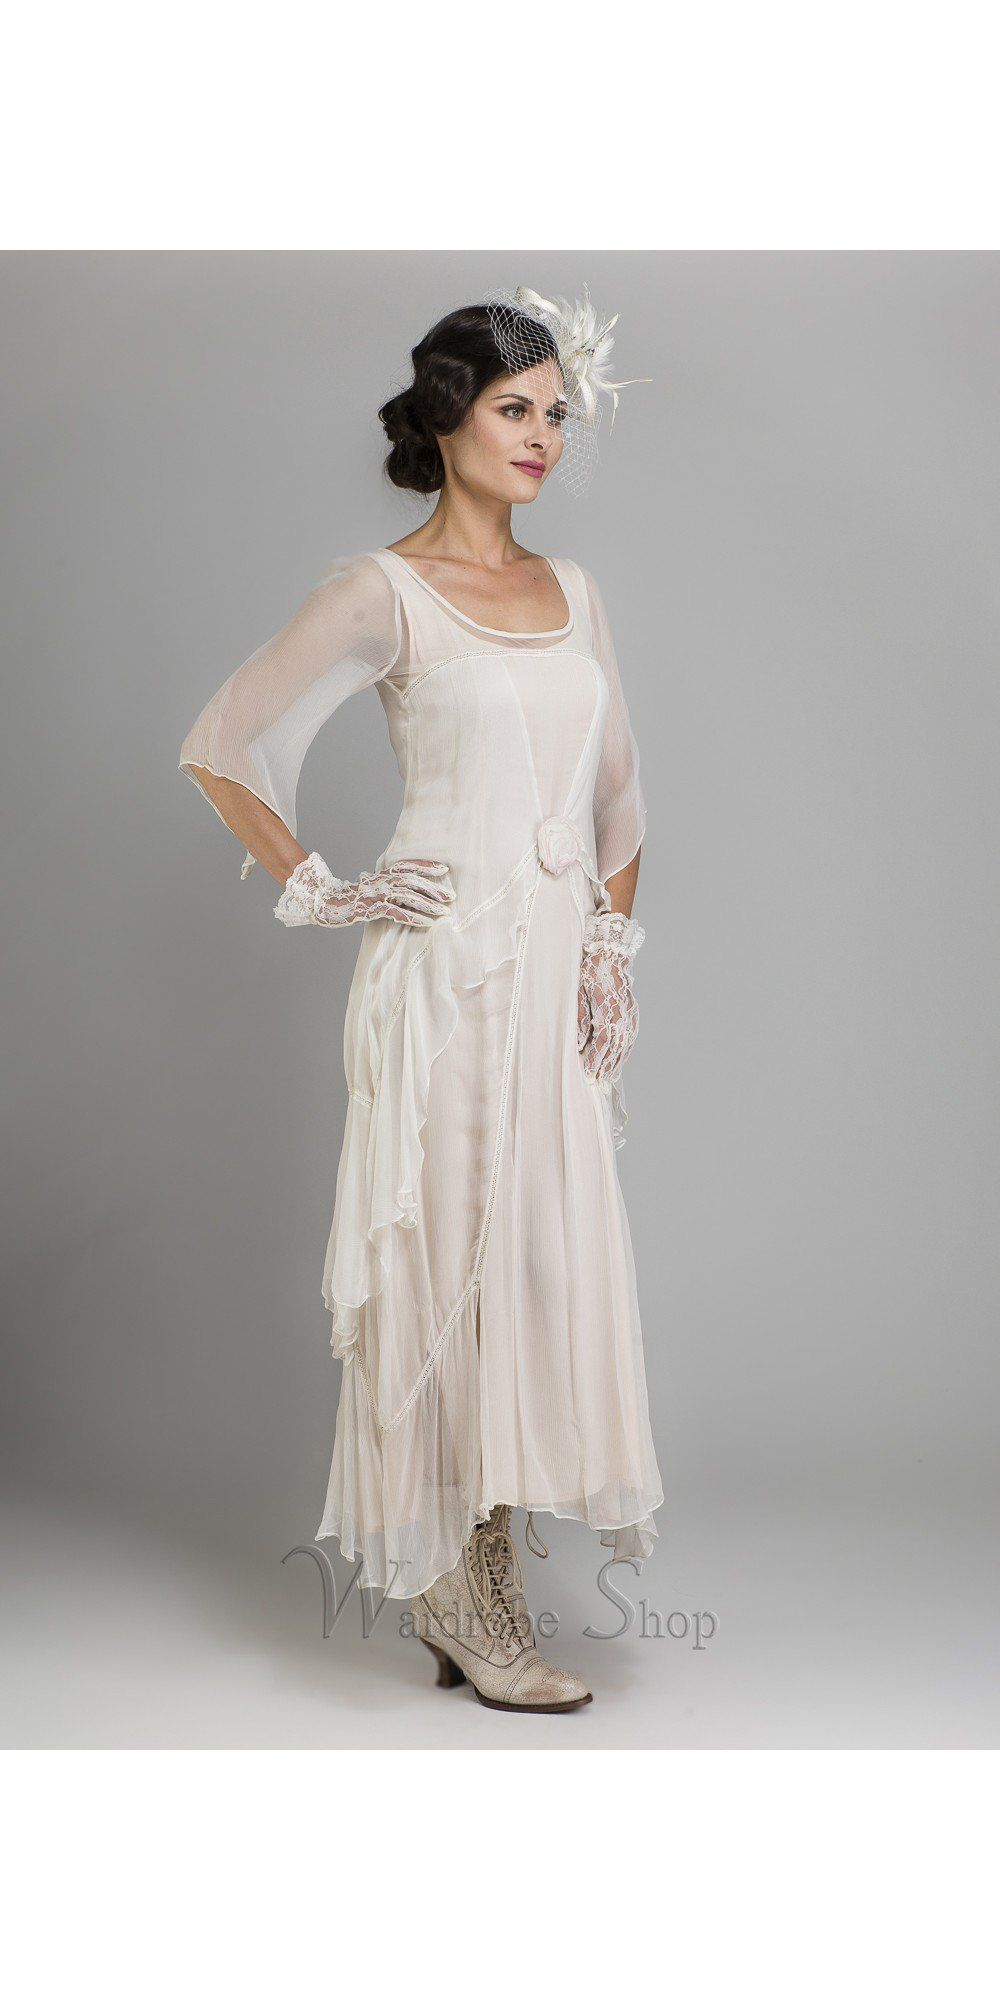 fbb48d8635 Beautiful vintage inspire alternative wedding dress by Nataya. Embellished  with a beautiful rosette in the